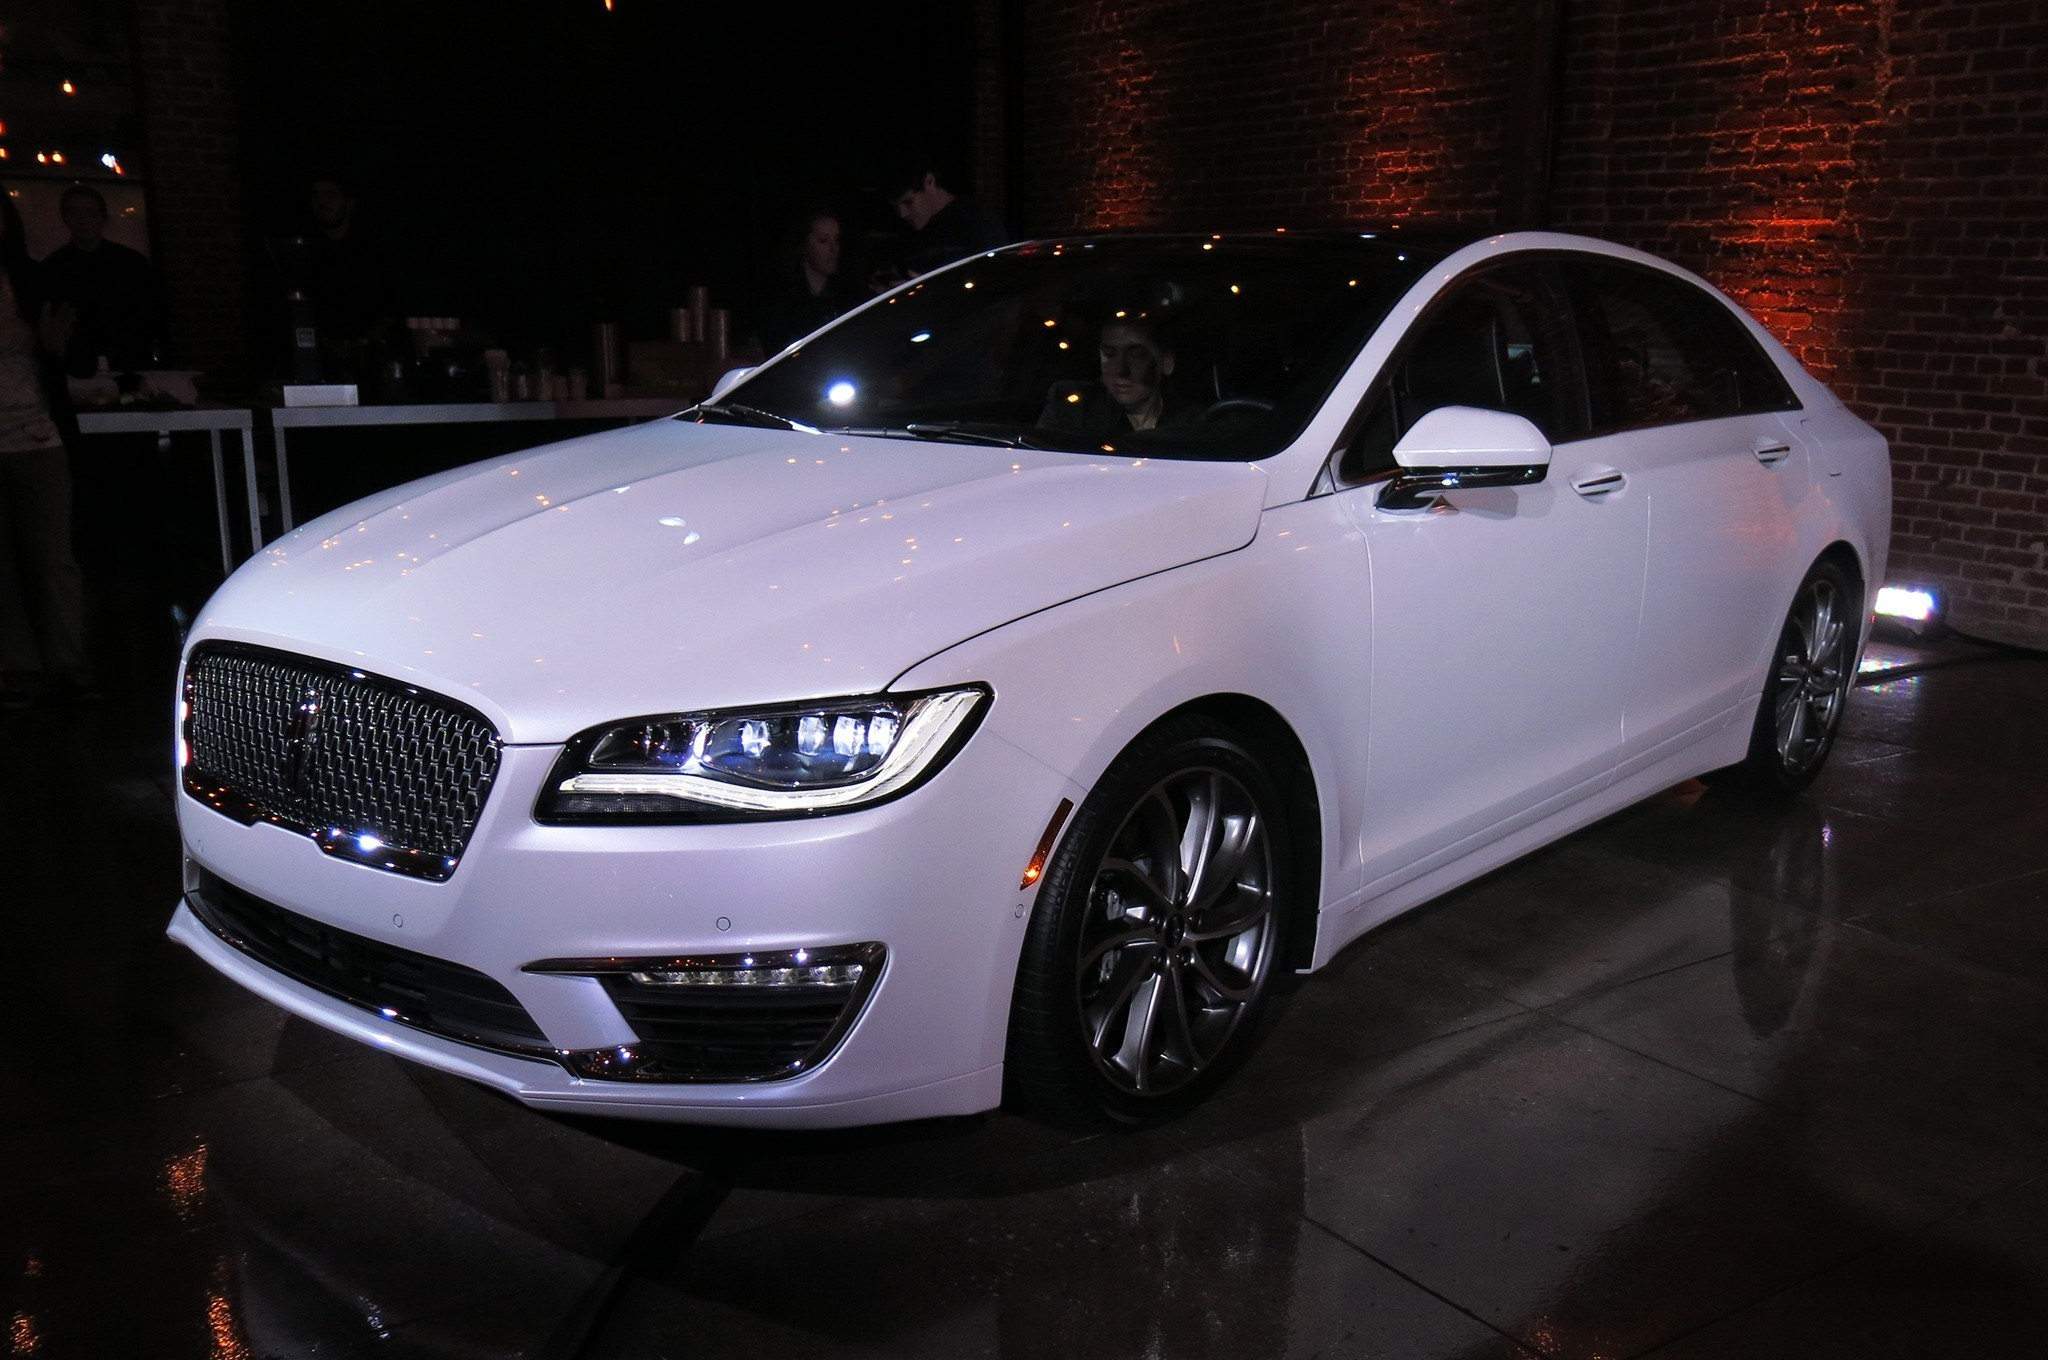 85 A Spy Shots Lincoln Mkz Sedan Review